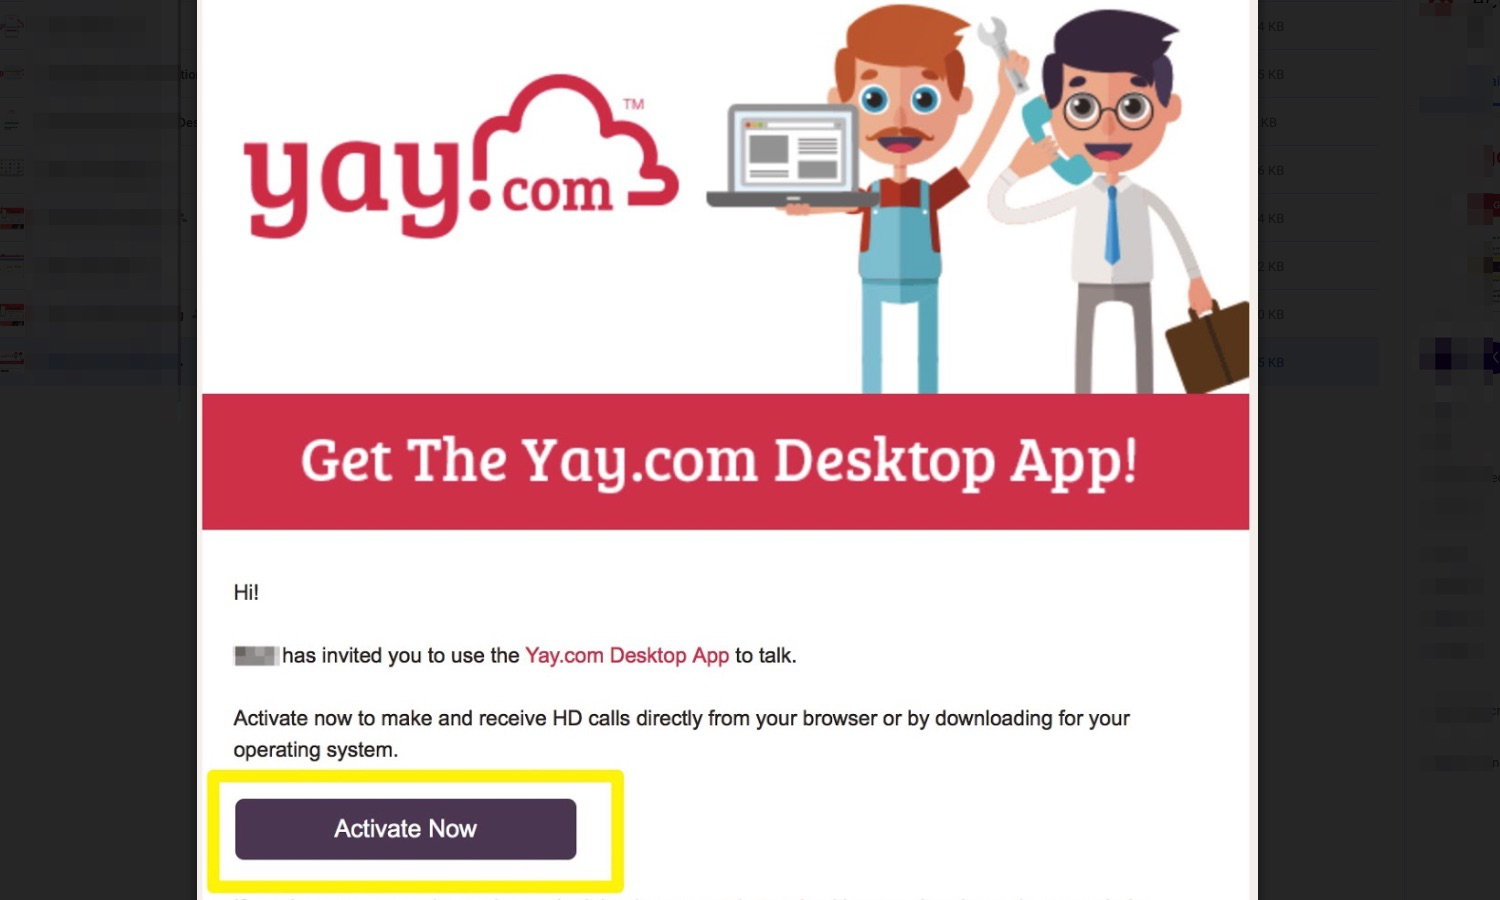 You'll receive an email to activate your User with the Yay.com Mobile App.